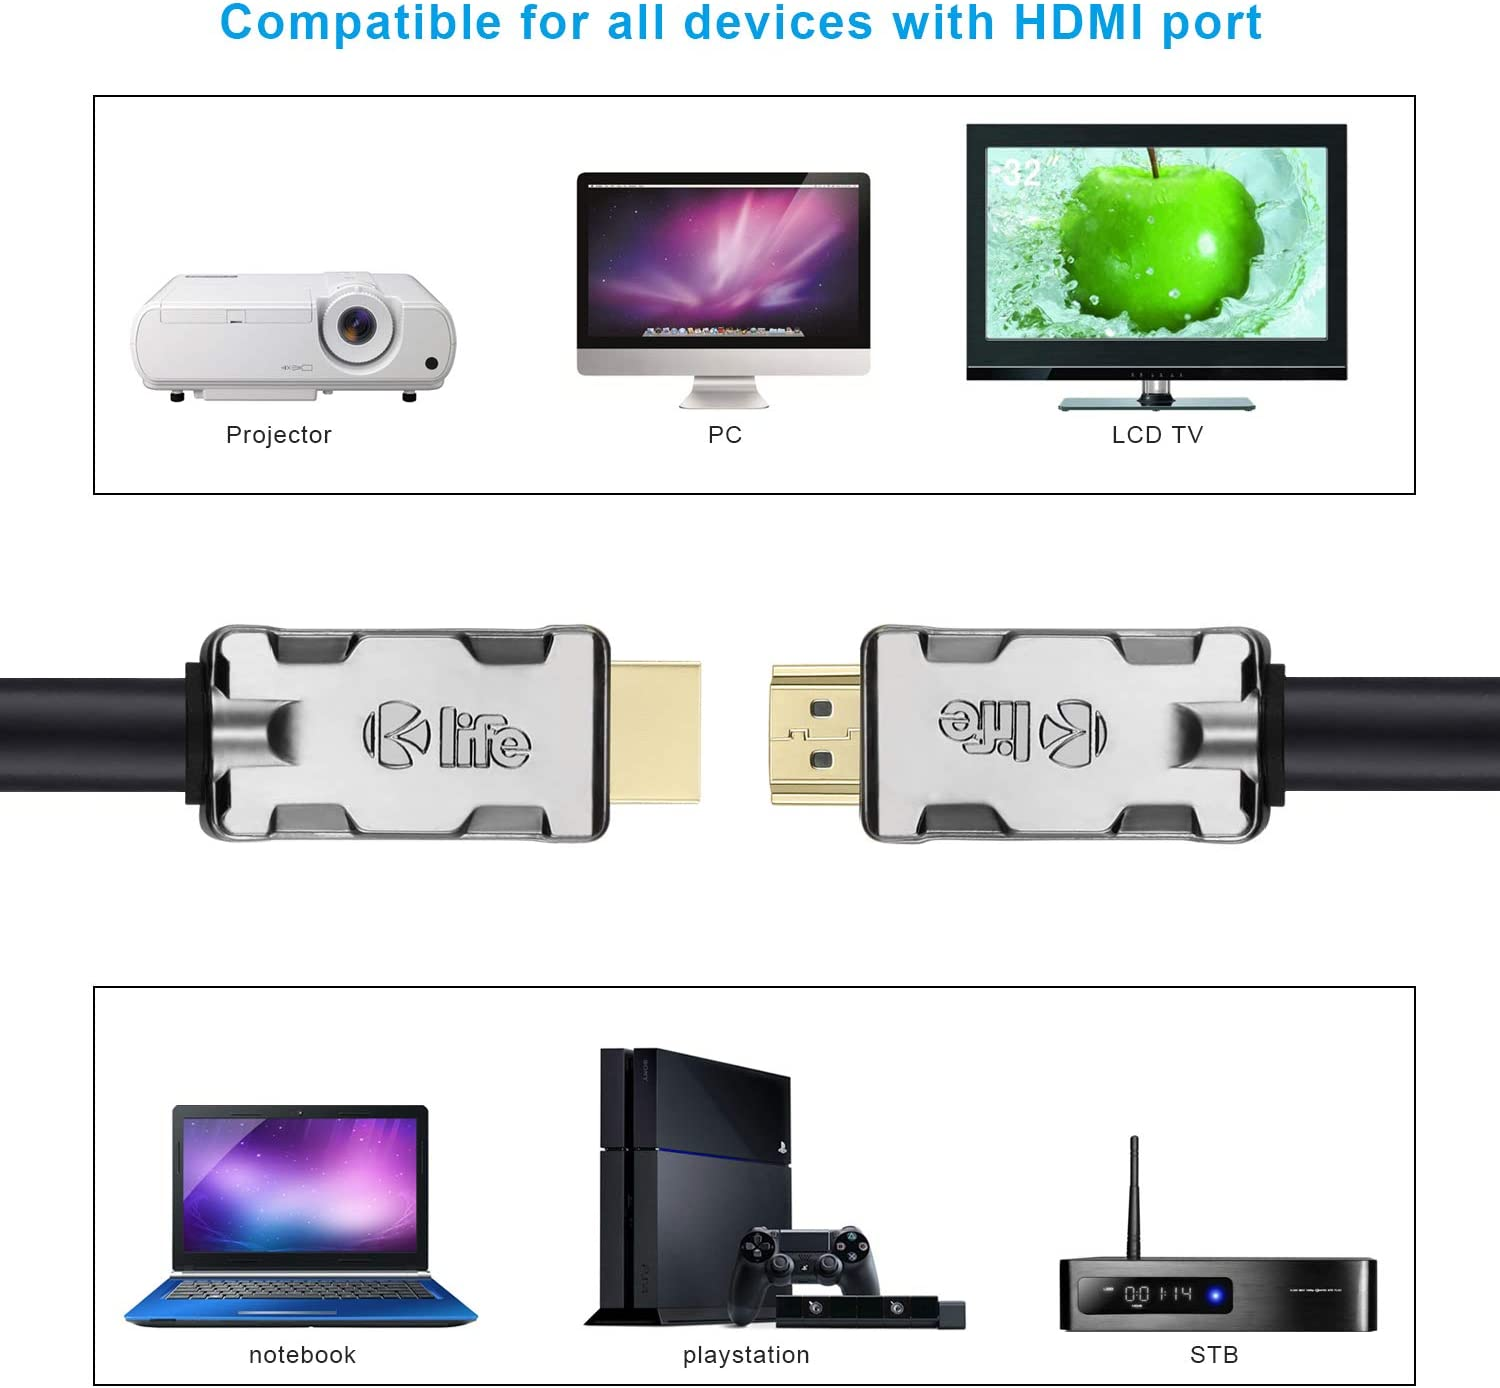 26AWG HDMI Cord HDCP2.2 1080P 2160P 3D Deep Color 4k HDMI Cable 12ft Ethernet and ARC 18Gbps HDMI 2.0 Cable Supports 4K@60Hz 4:4:4 Dolby HDR10 HLG